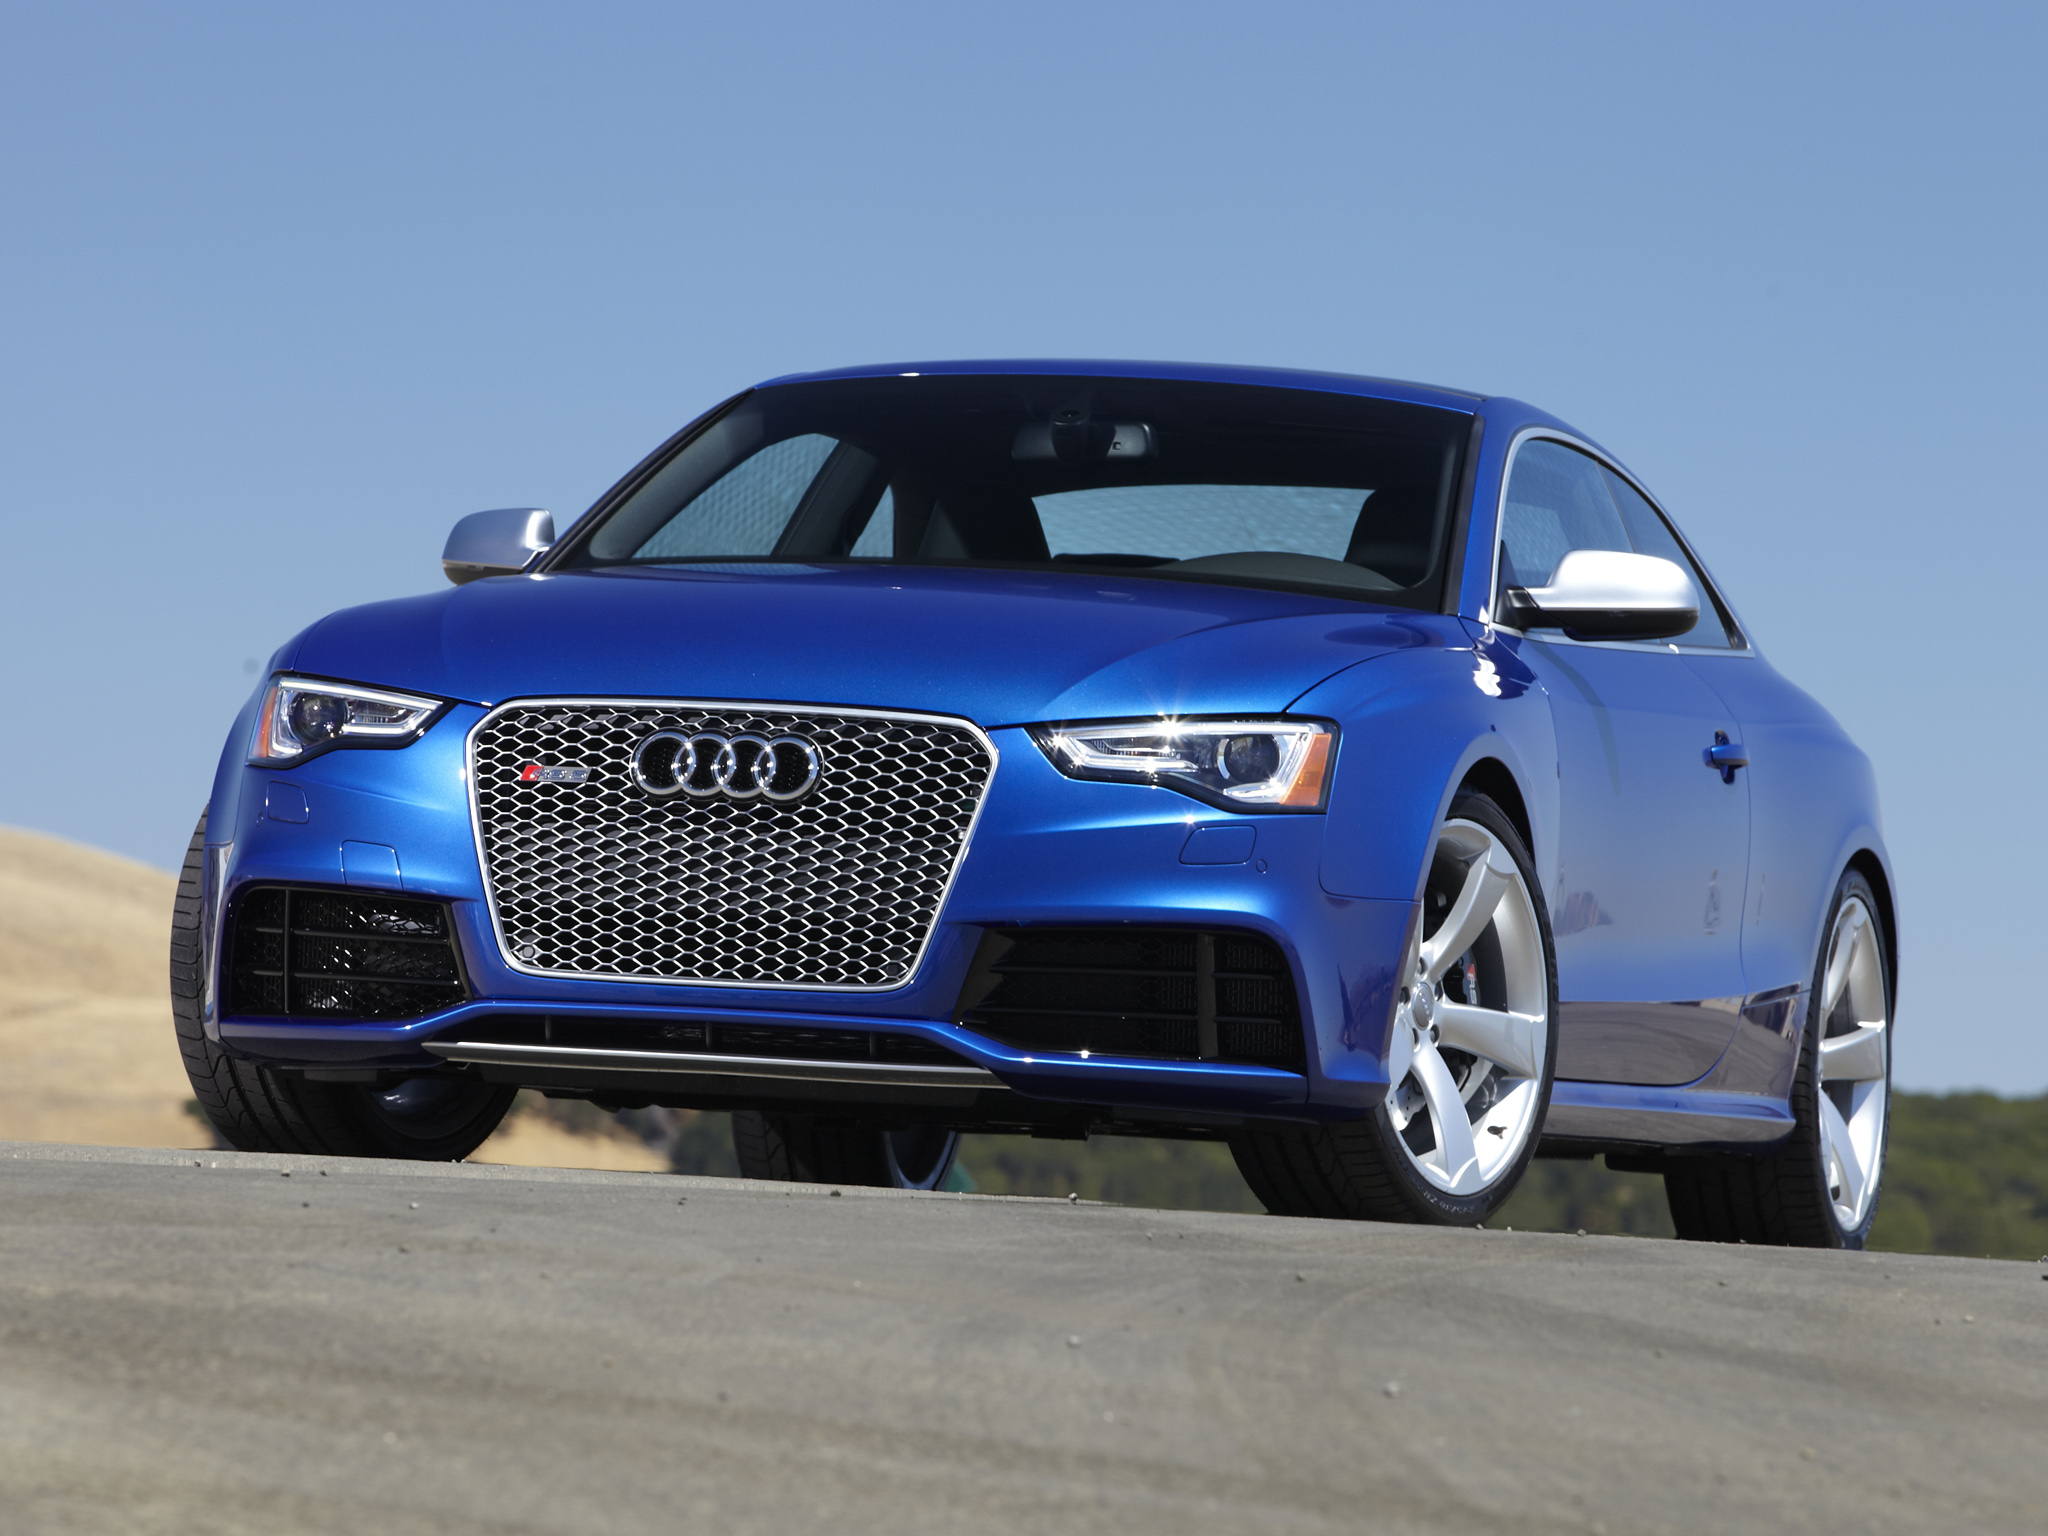 Audi Rs5 Picture 94399 Audi Photo Gallery Carsbase Com